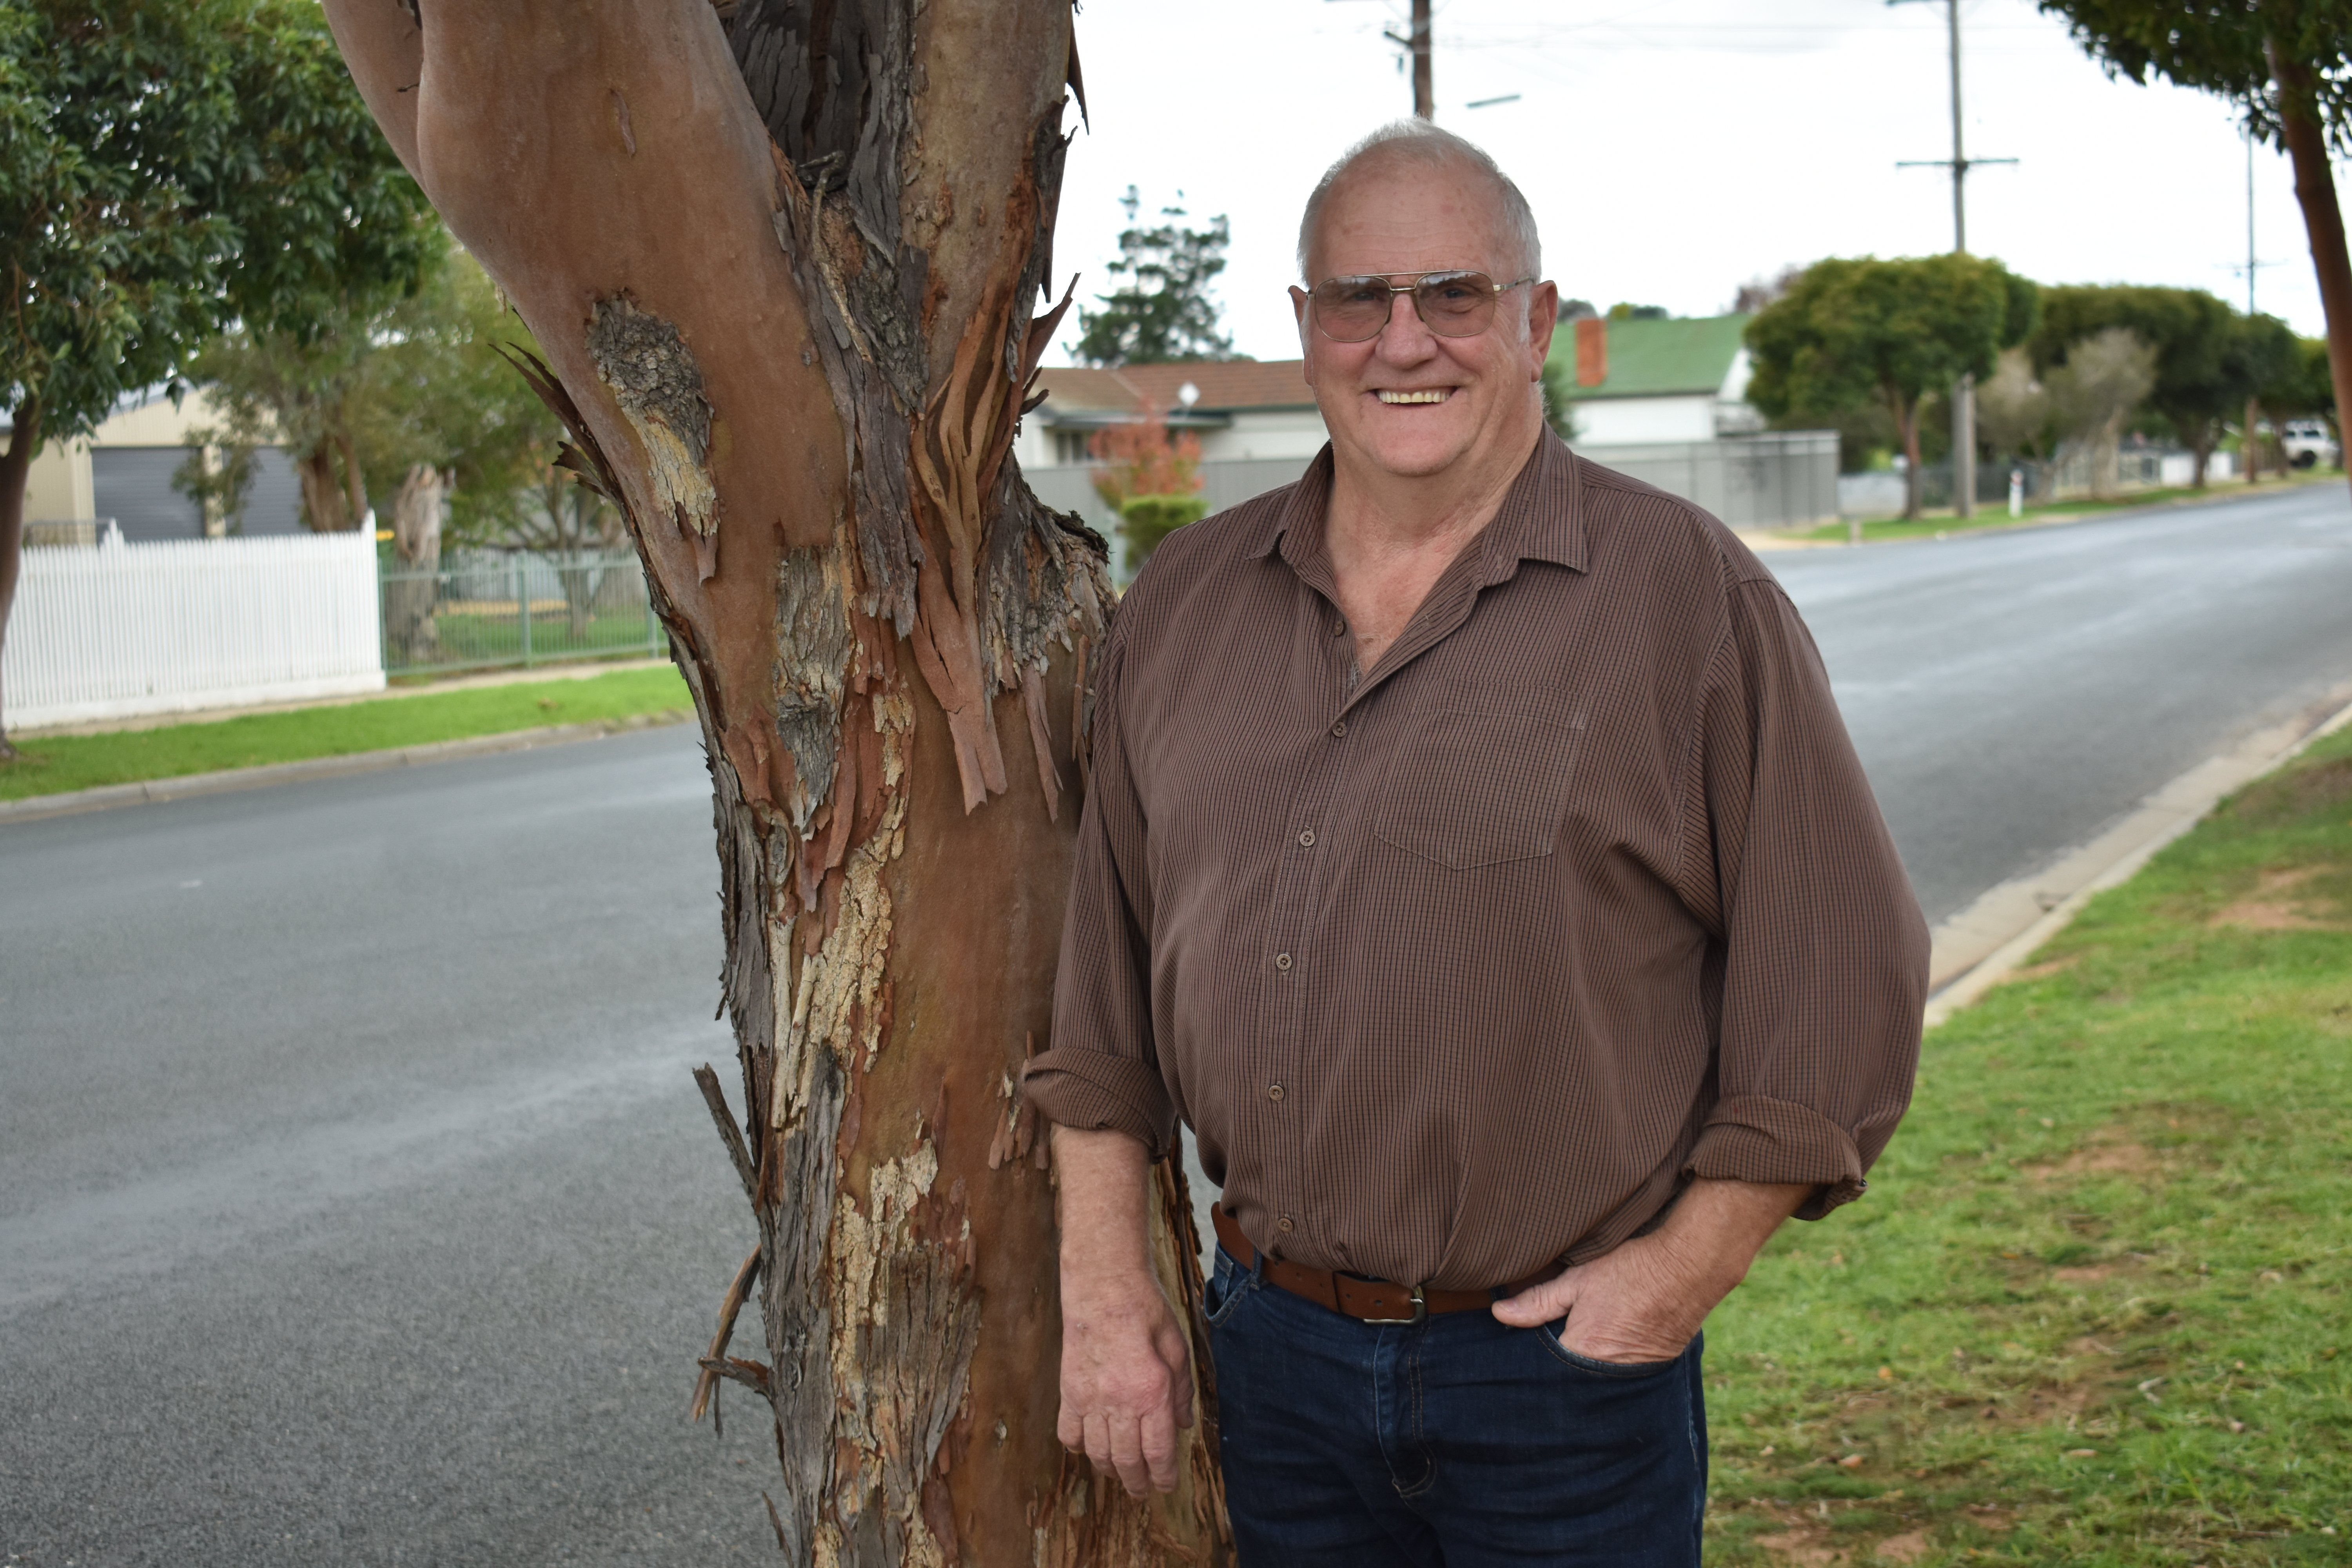 Mick Simpson standing next to a tree in suburban street